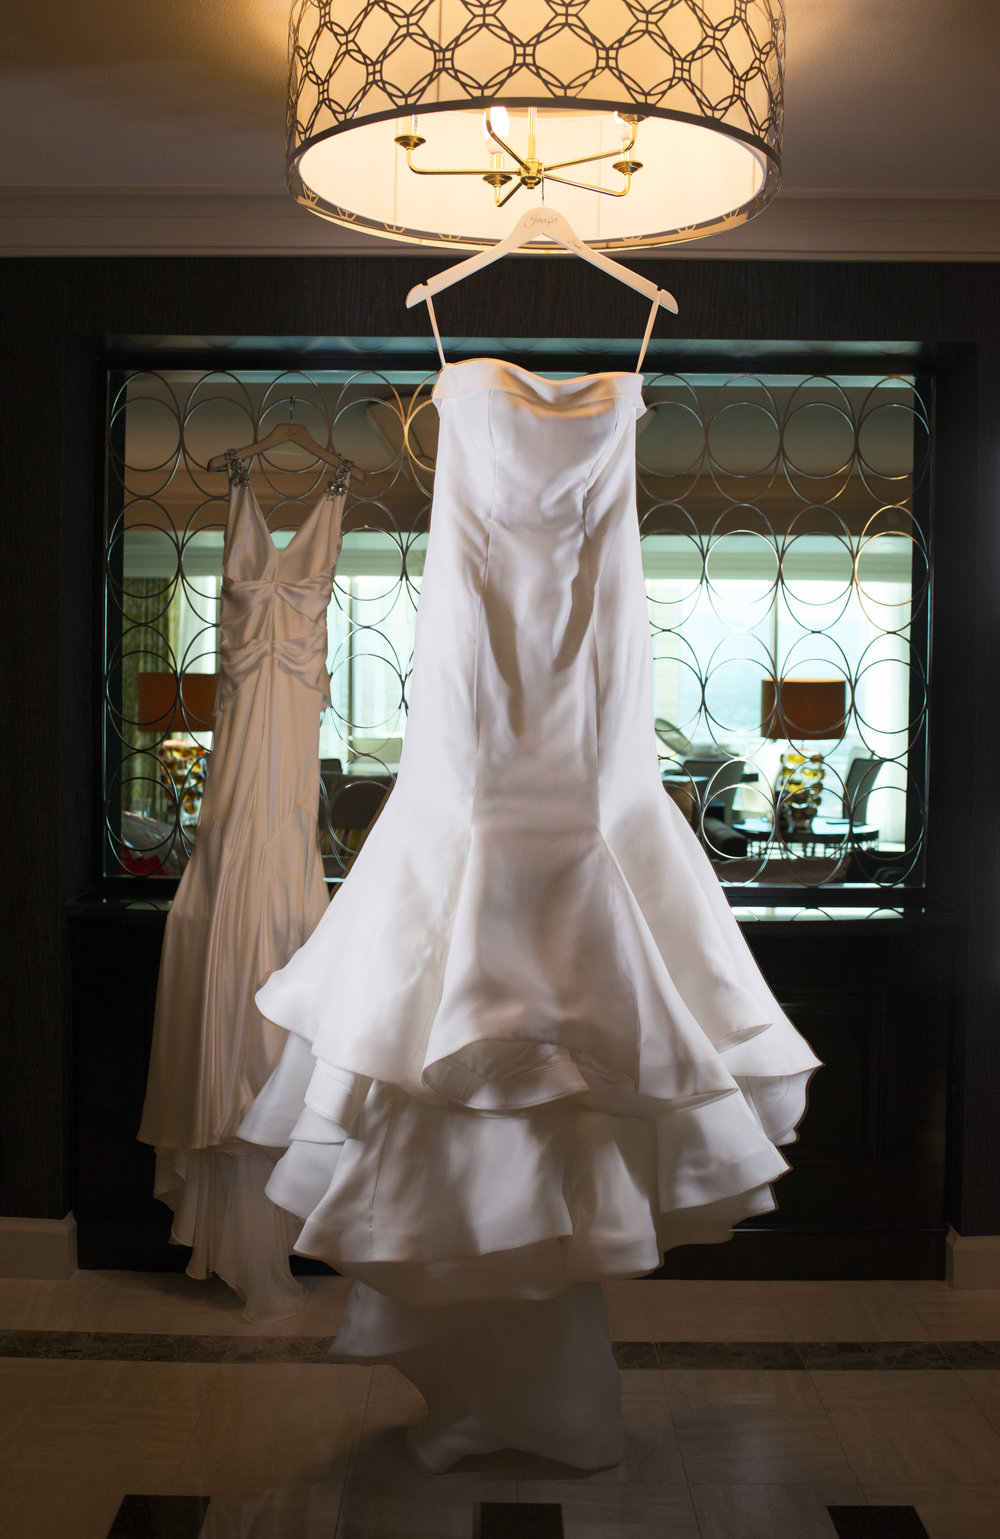 Wedding Dress by Sareh Nouri at Mon Ami Salon.  Luxury Las Vegas Wedding Planner Andrea Eppolito.  Wedding at Four Seasons Las Vegas.  Image by AltF Photography.